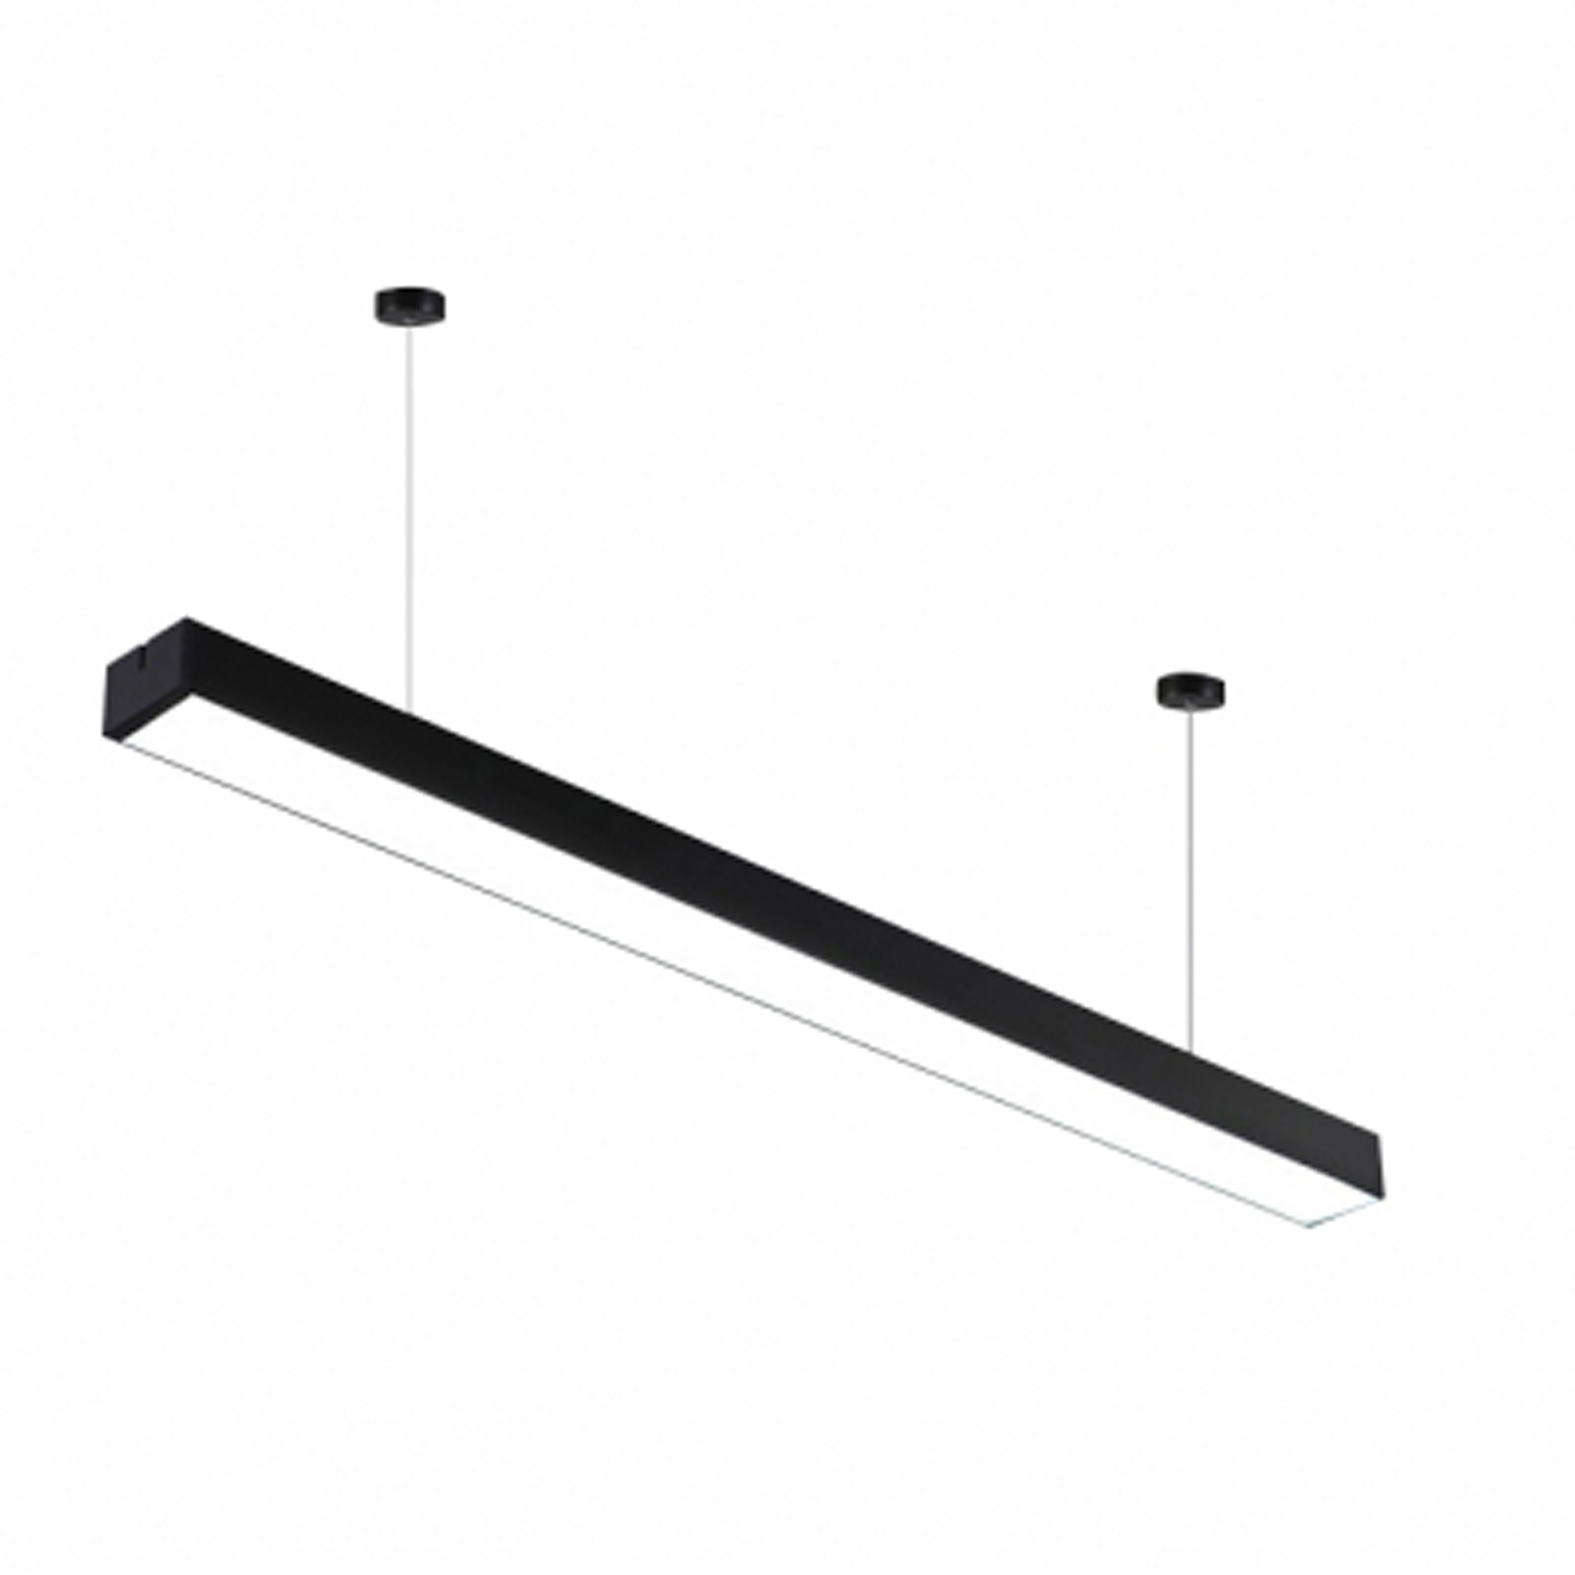 LED surface-mounted luminaire 36W 120x3,5x7cm Suspension with steel cable Black Pi-9-36W